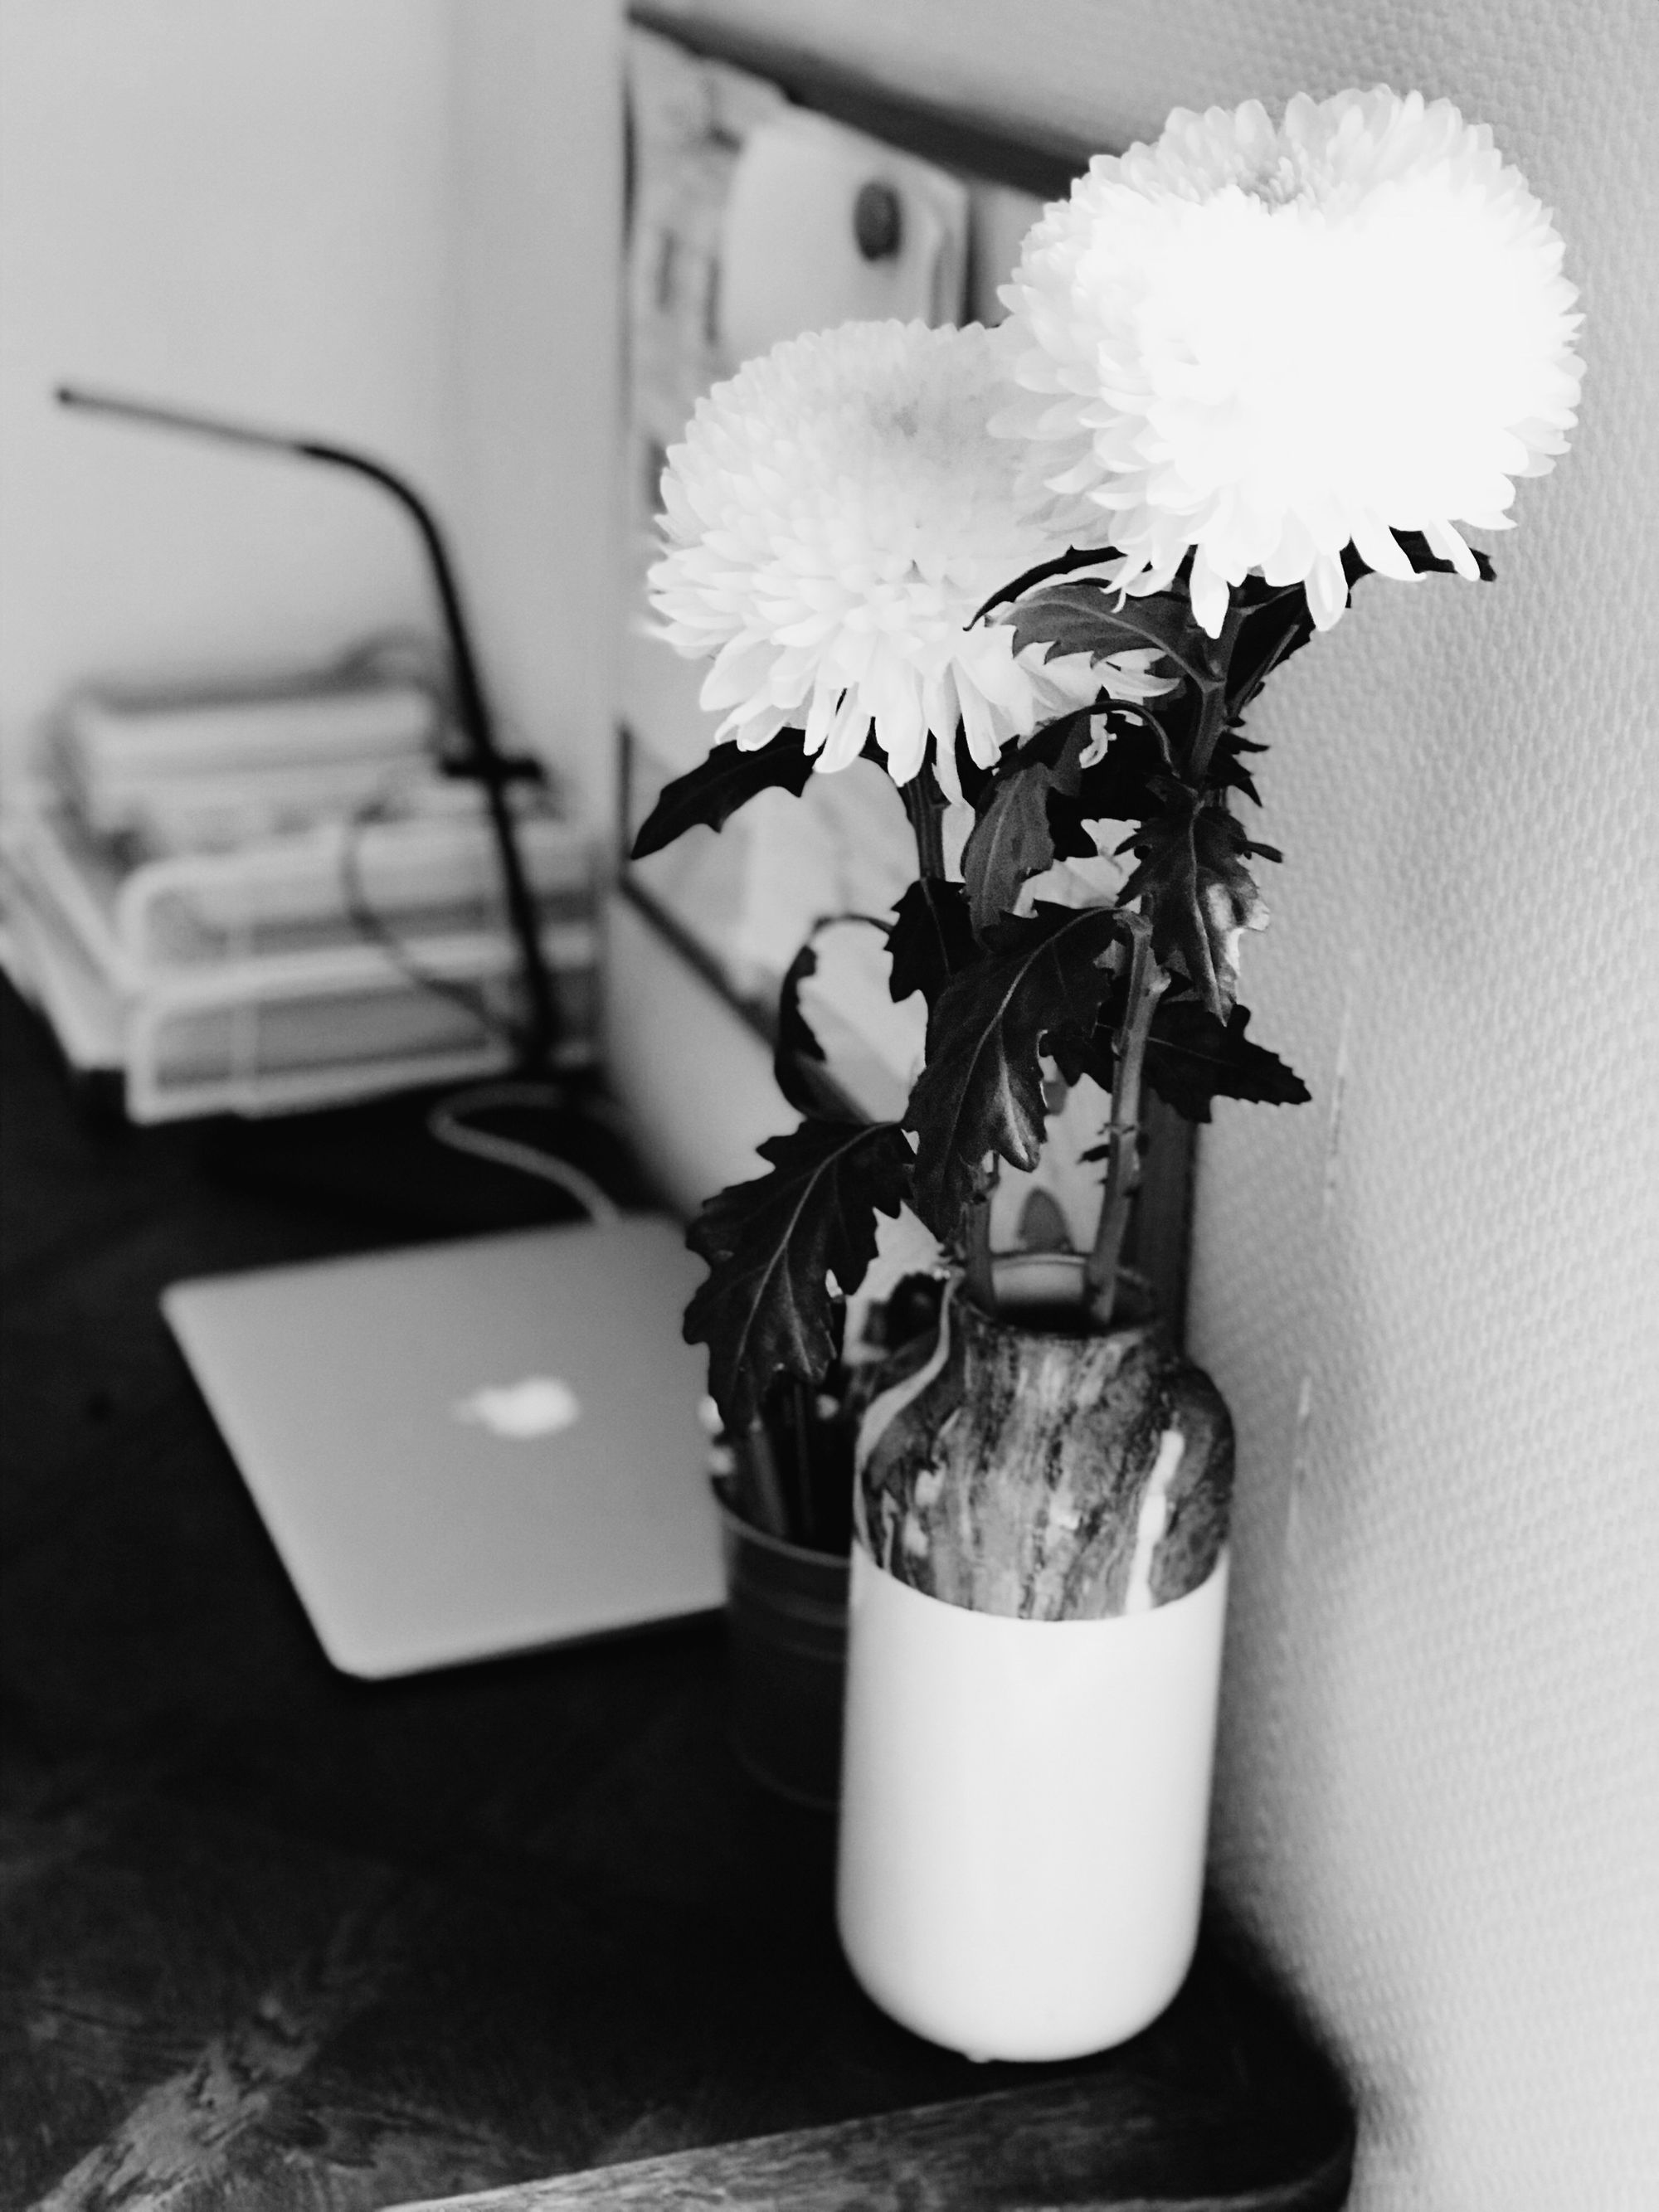 A table with some flowers and a MacBook.